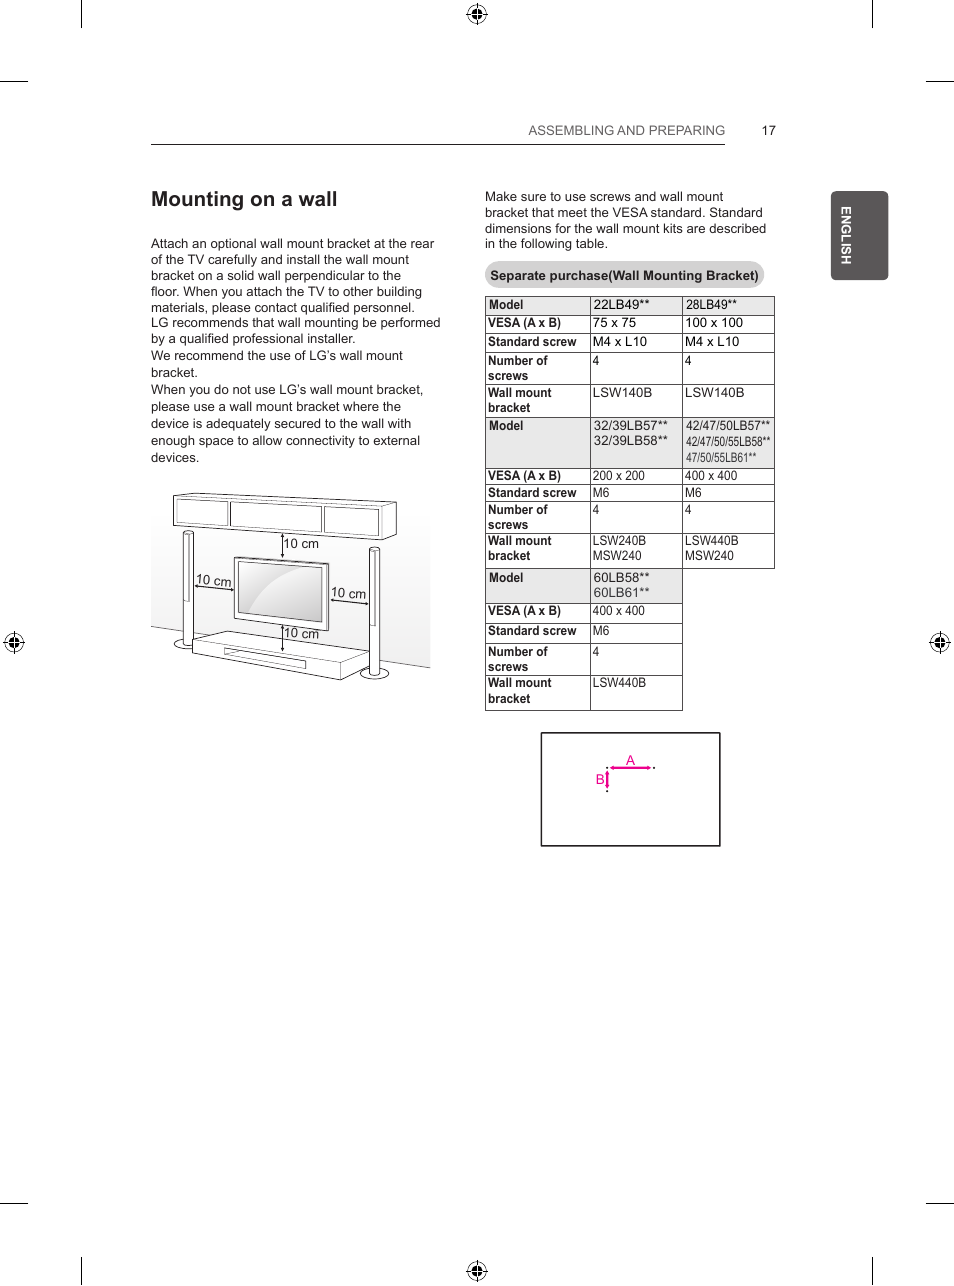 mounting on a wall lg 42lb5820 user manual page 41 236 rh manualsdir com User Manual PDF User Manual Template